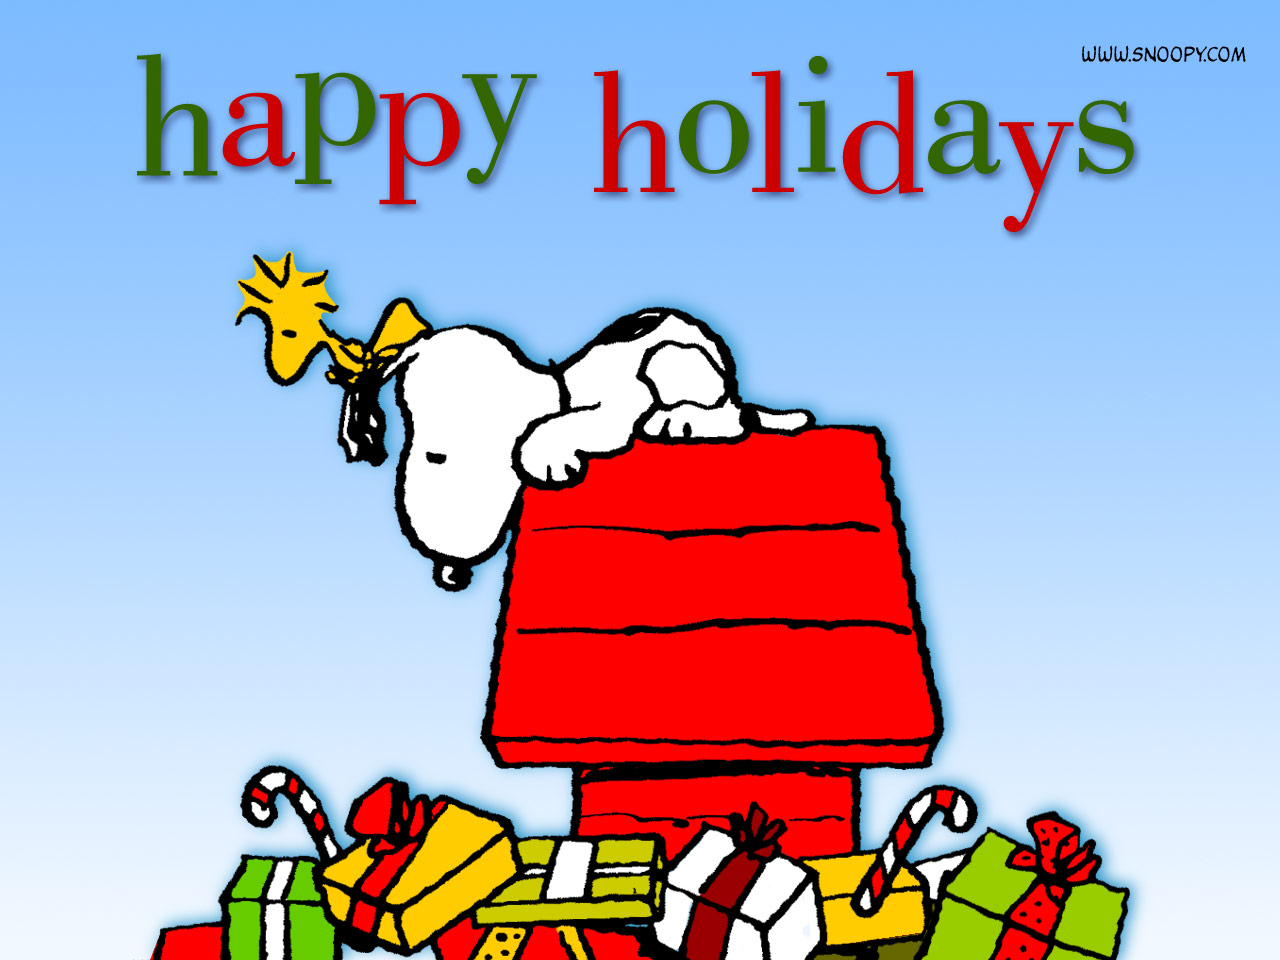 Snoopy Christmas   Christmas Wallpaper 452768 1280x960